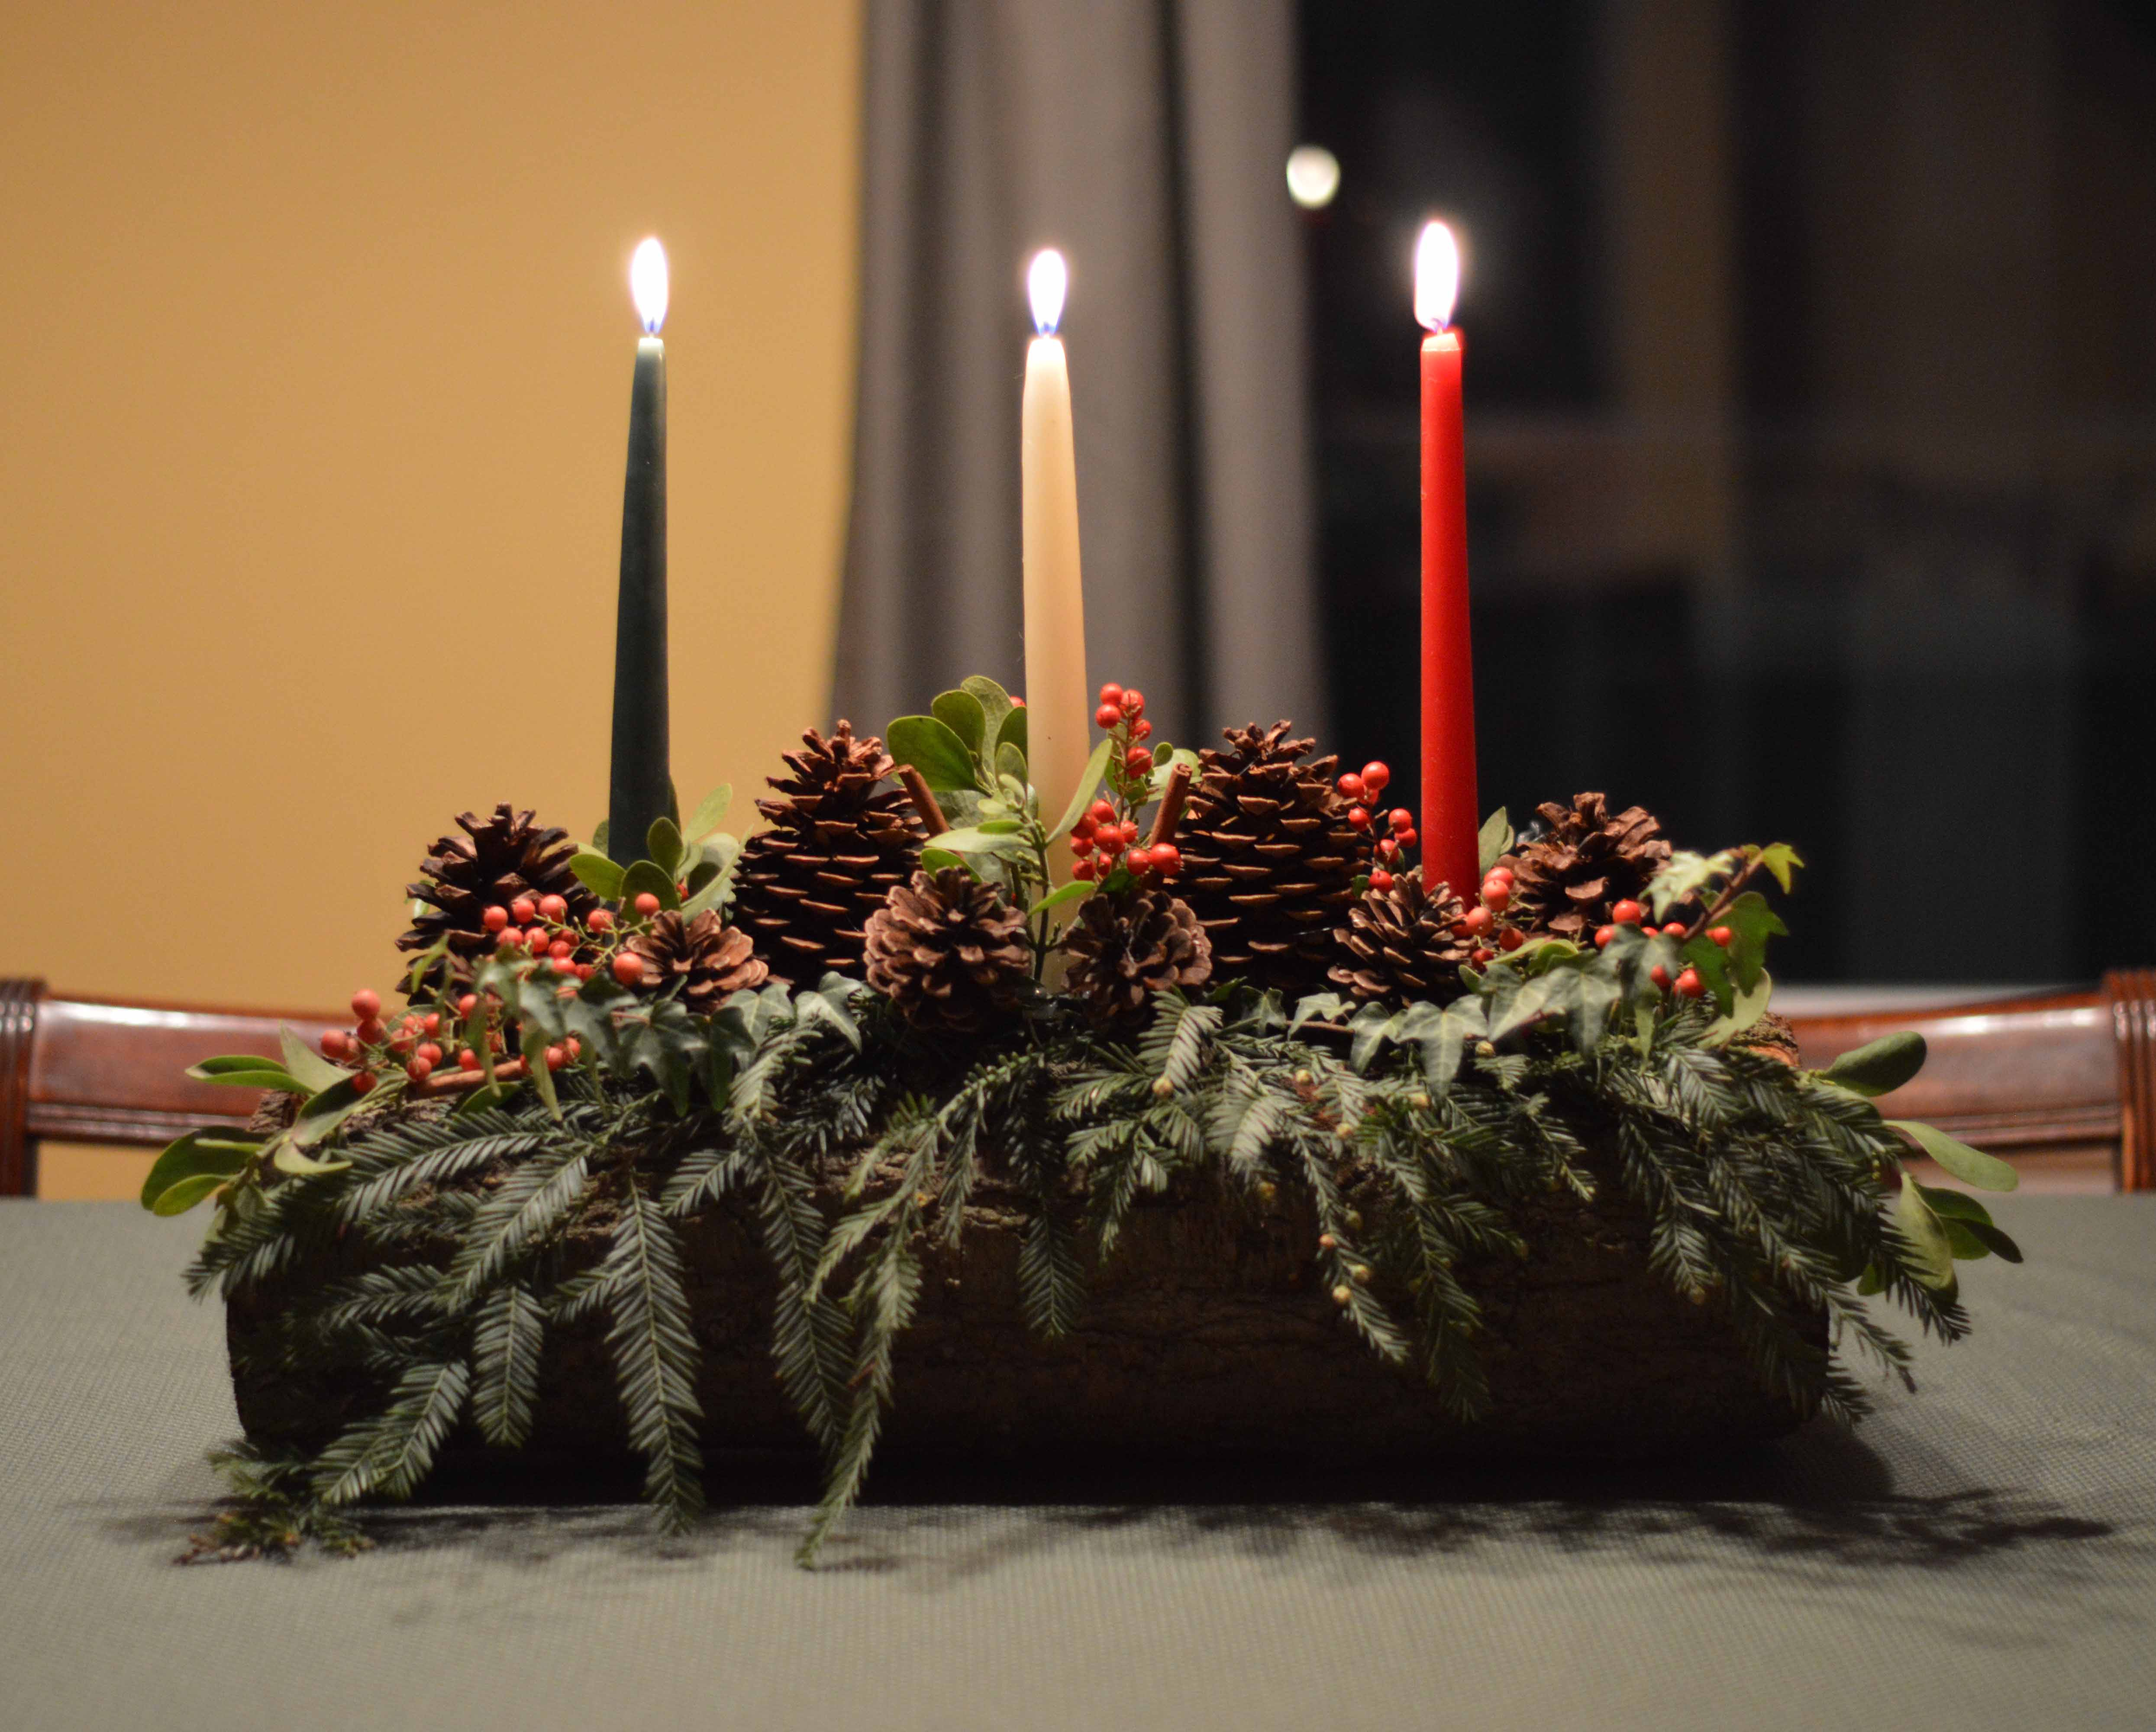 DIY Yule Log TutorialSubscribe to The Painted Hinge's FREE weekly newsletter and never miss a thing!